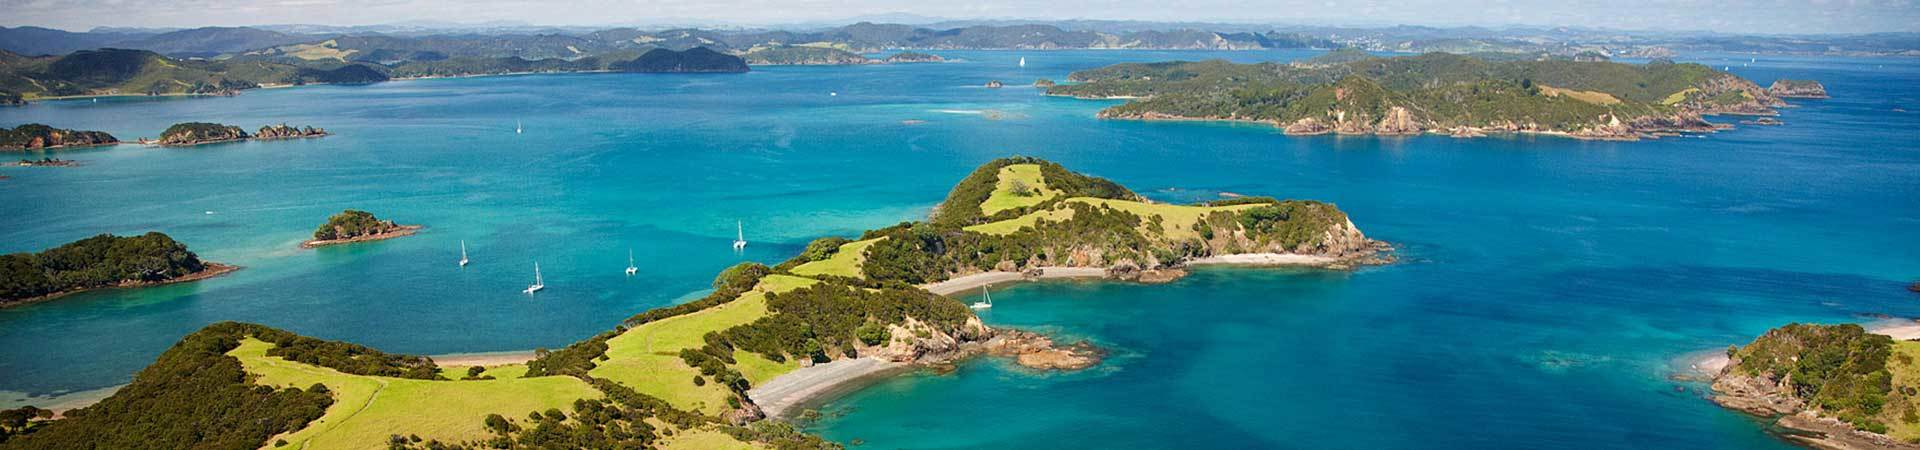 Bay of Islands aerial shot, New Zealand